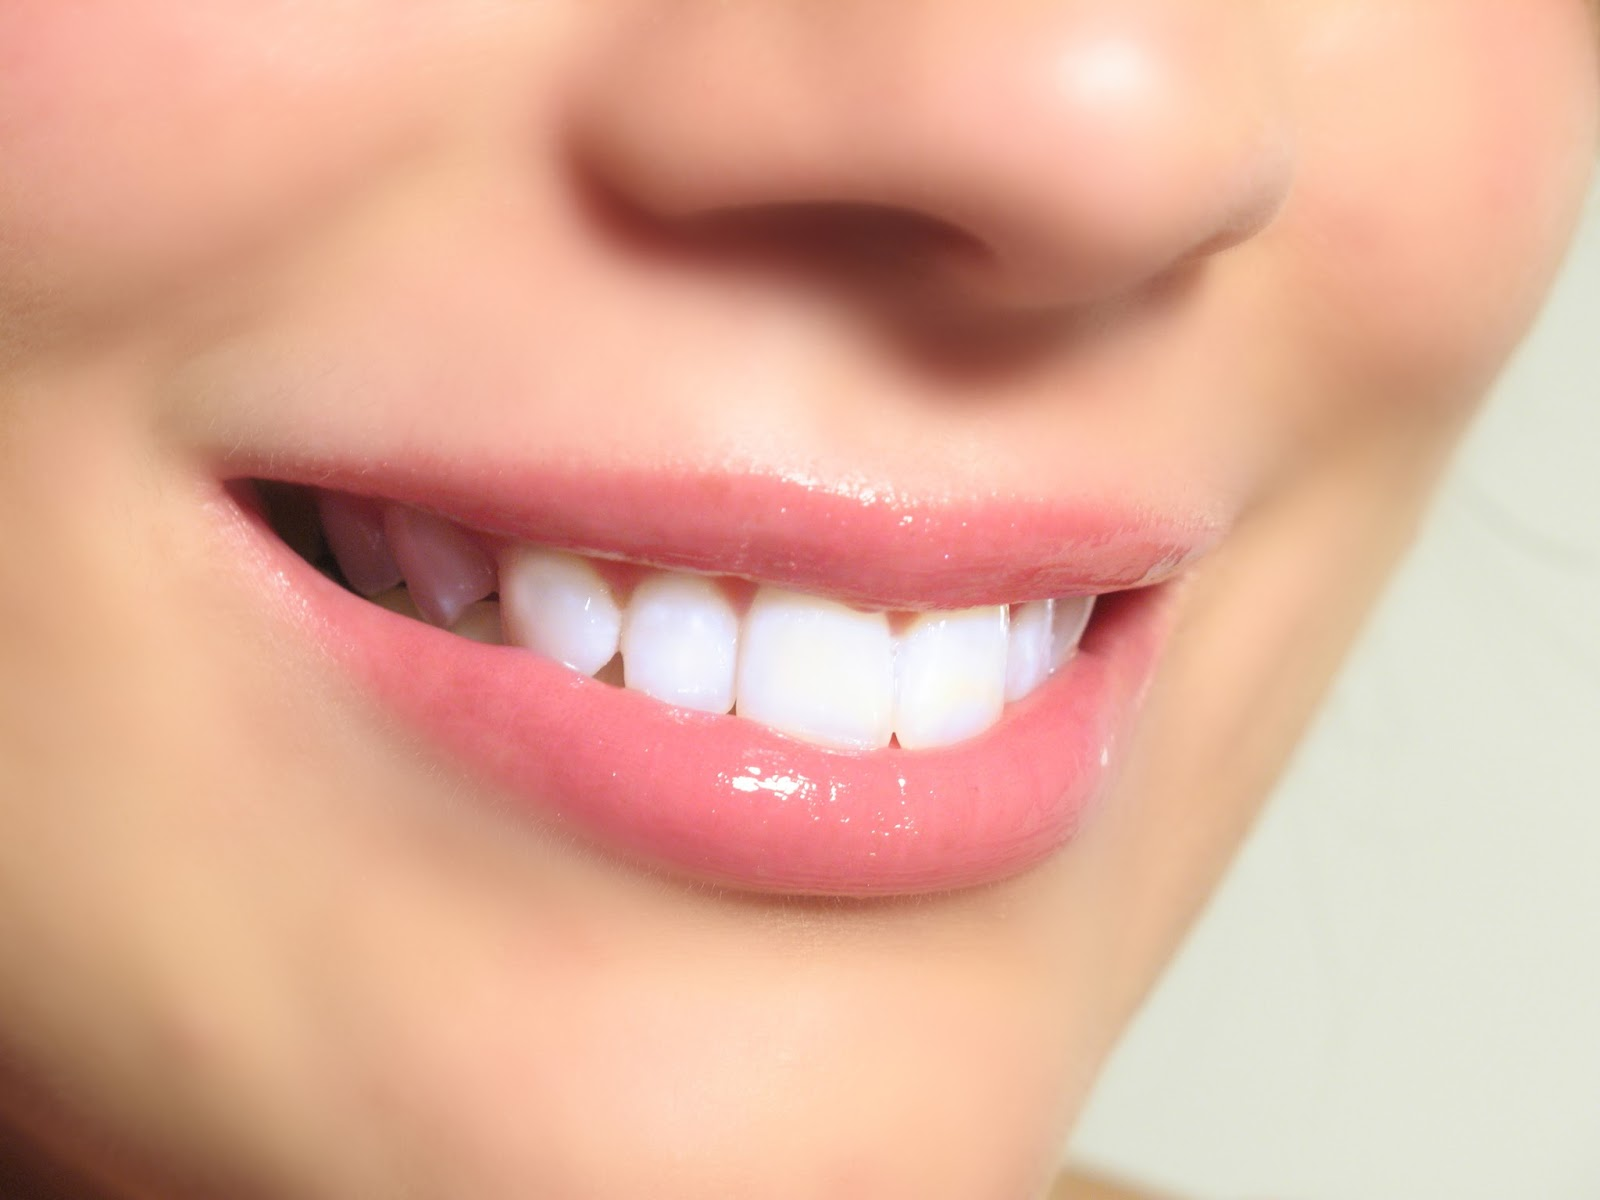 WHICH FOOD PRODUCTS ARE USEFUL FOR TEETH